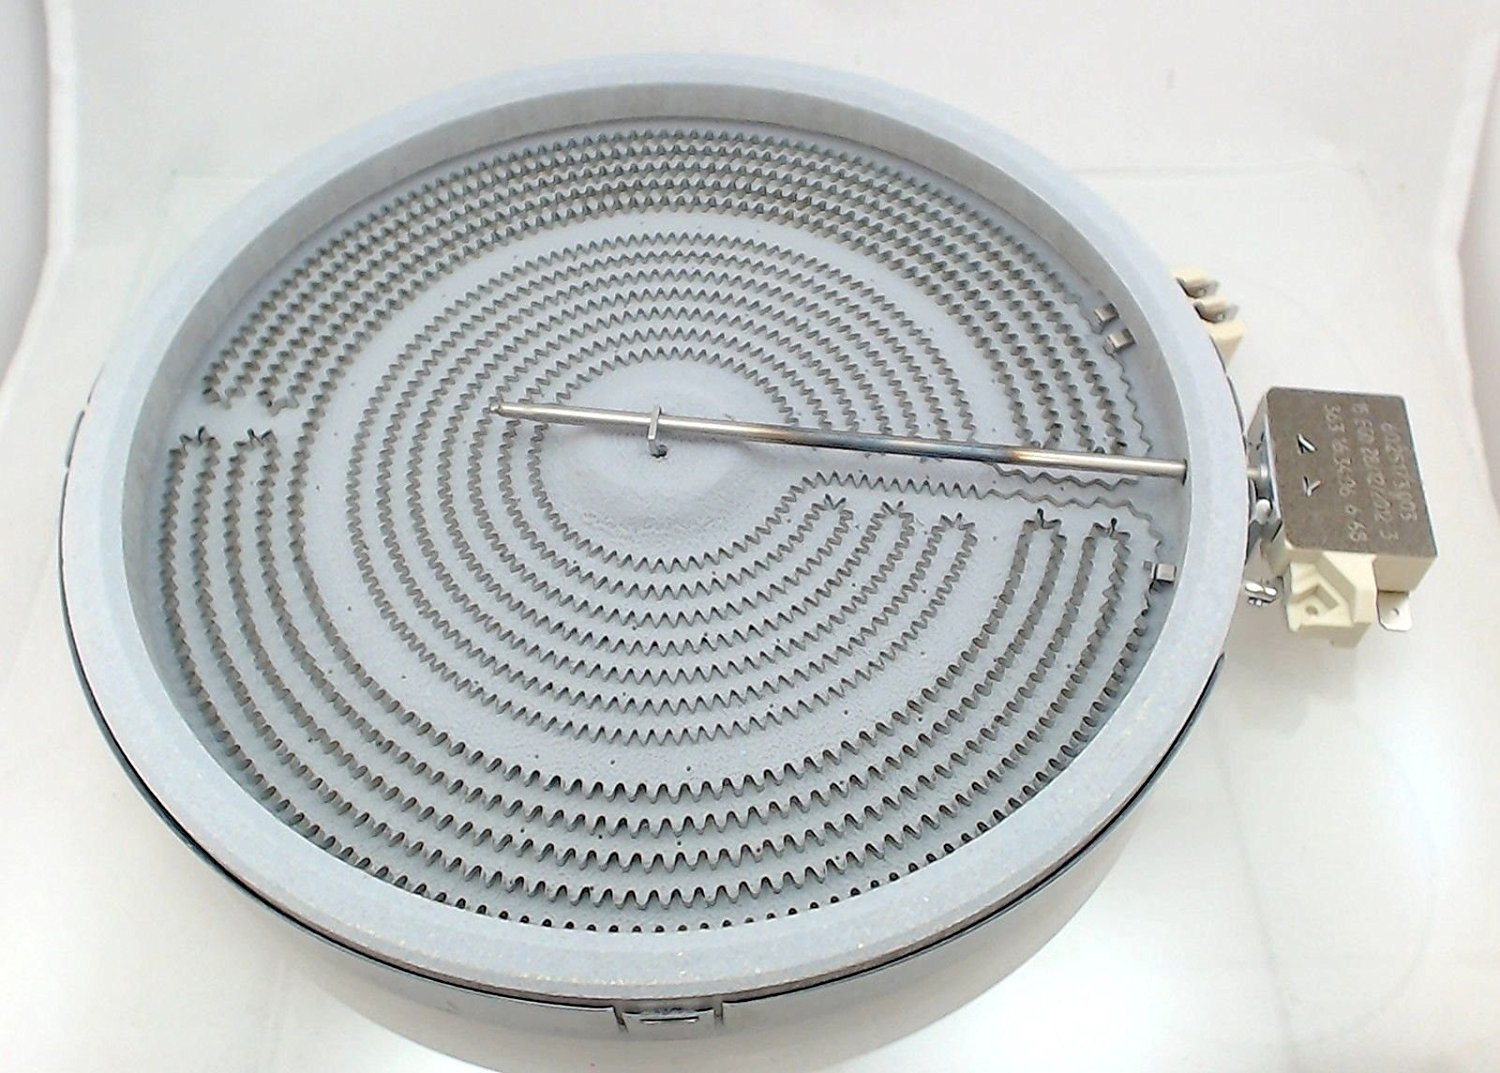 WB30T10044 Range Haliant Surface Burner REPAIR PART FOR GE. AMANA. HOTPOINT. KENMORE AND MORE